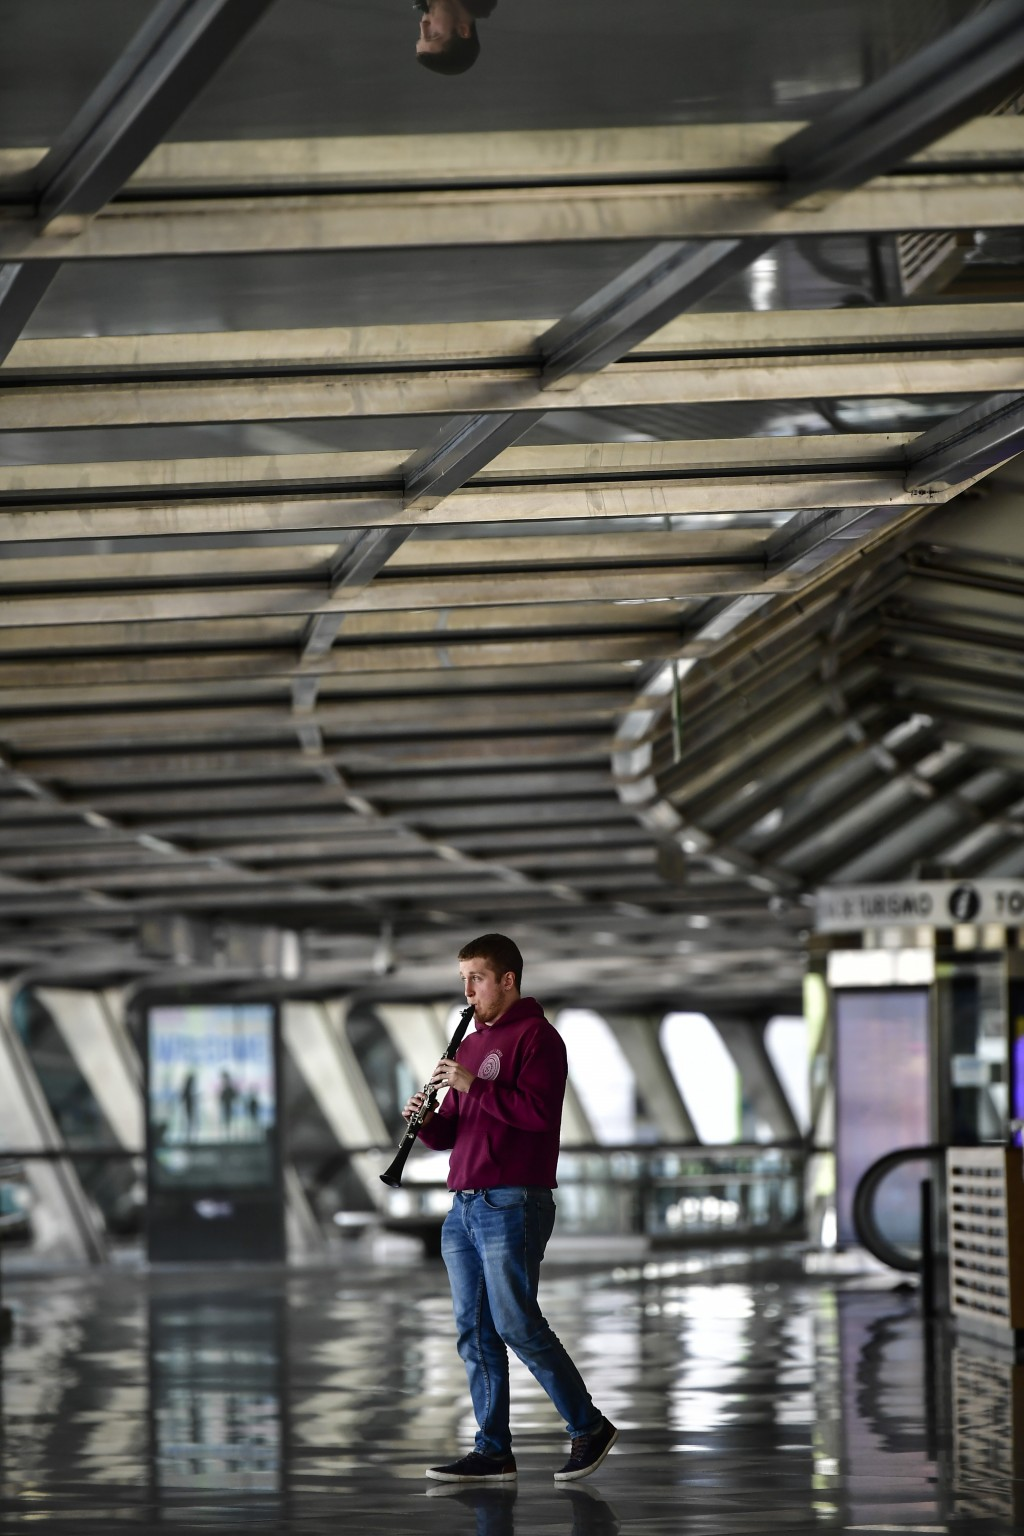 Benat Erro Diez, a young student musician plays his clarinet in the empty Loiu airport, near to Bilbao, northern Spain, Monday, March 23, 2020. For so...